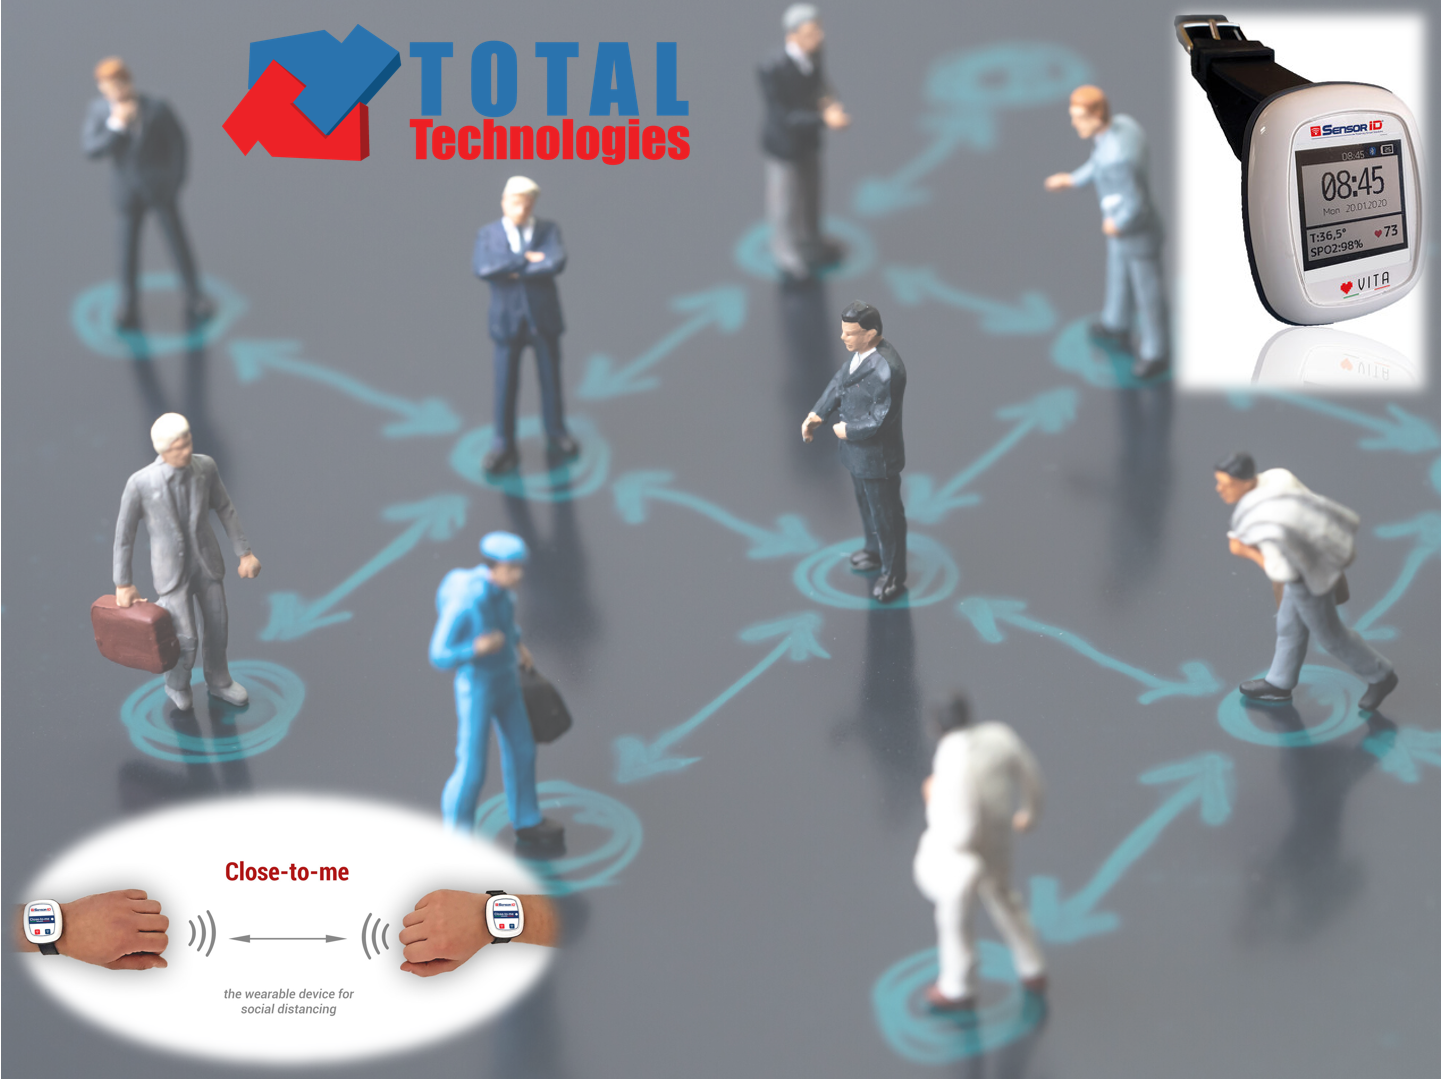 Total Technologies supports social distancing and healthcare with the